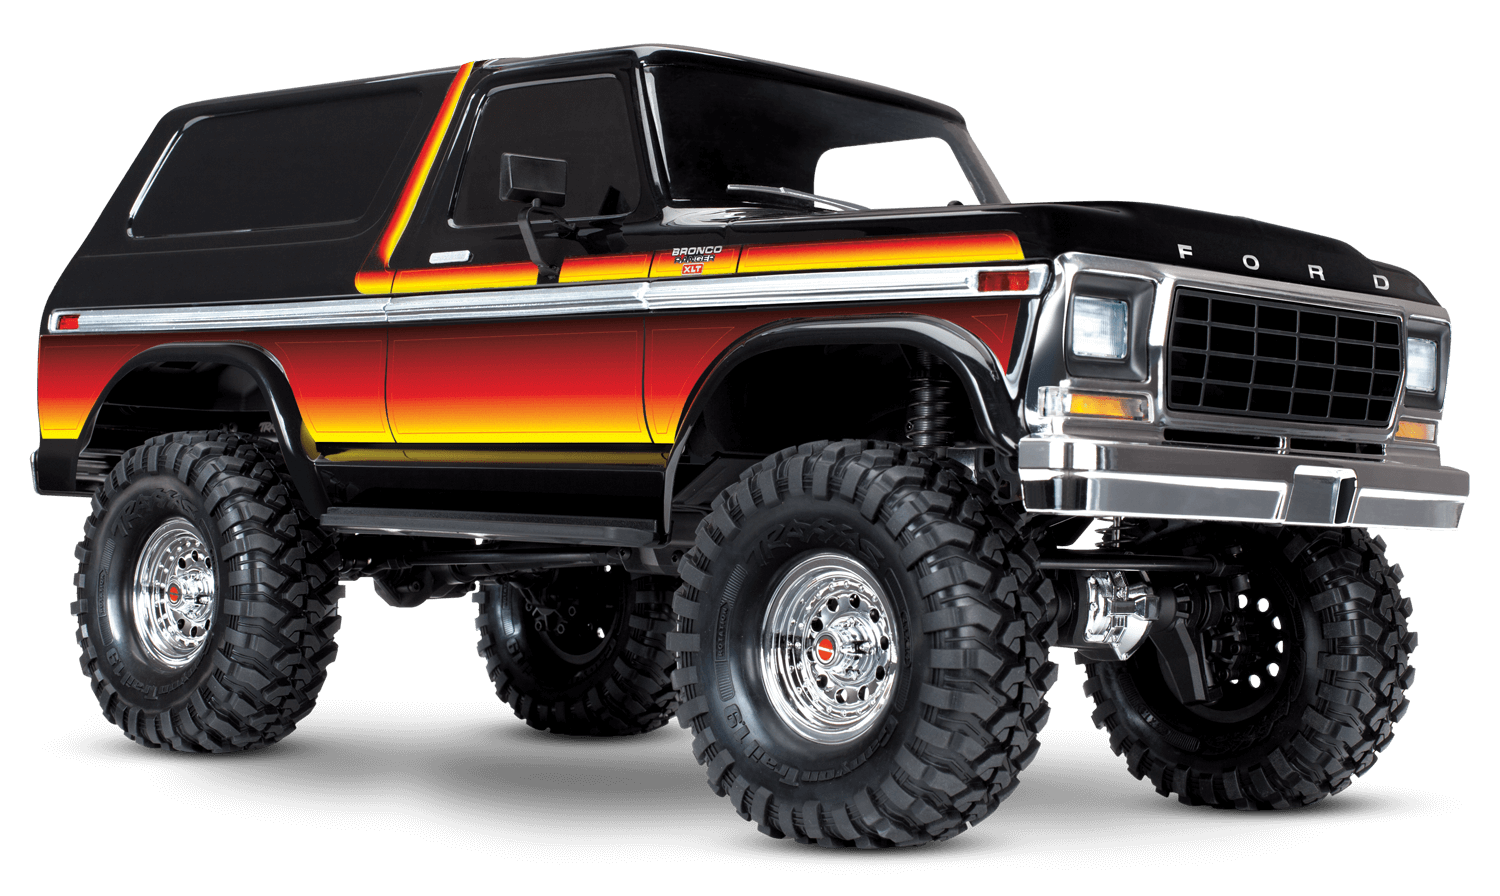 1979 Ford Bronco with Sunset paint scheme